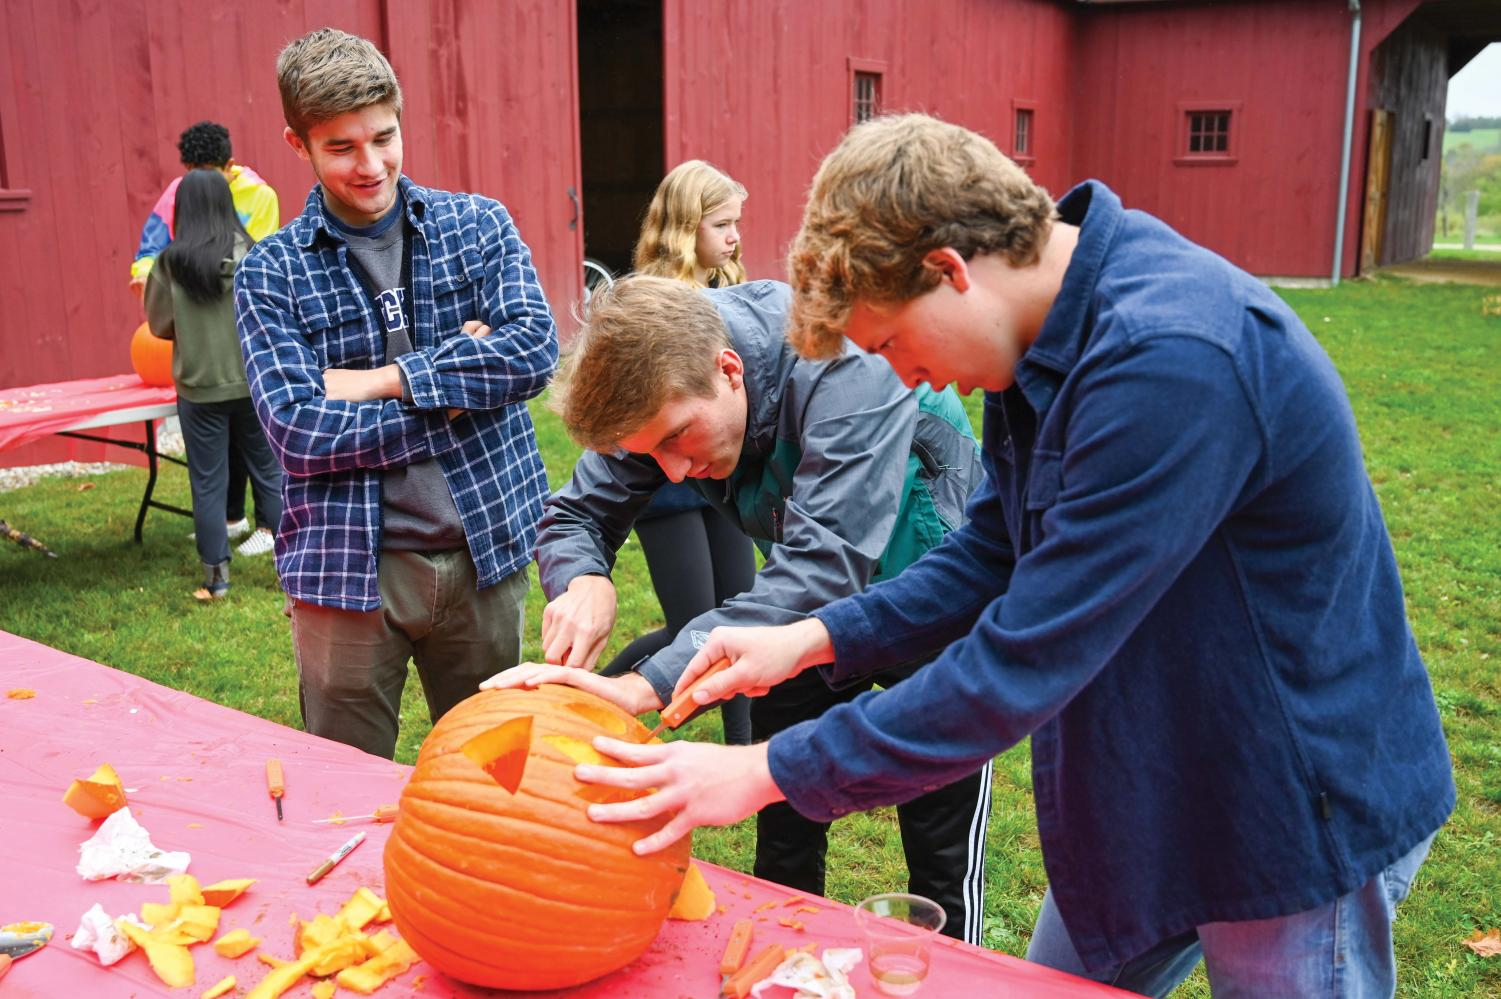 Students enjoyed a day full of activities at the Fall Festival, including pumpkin carving.